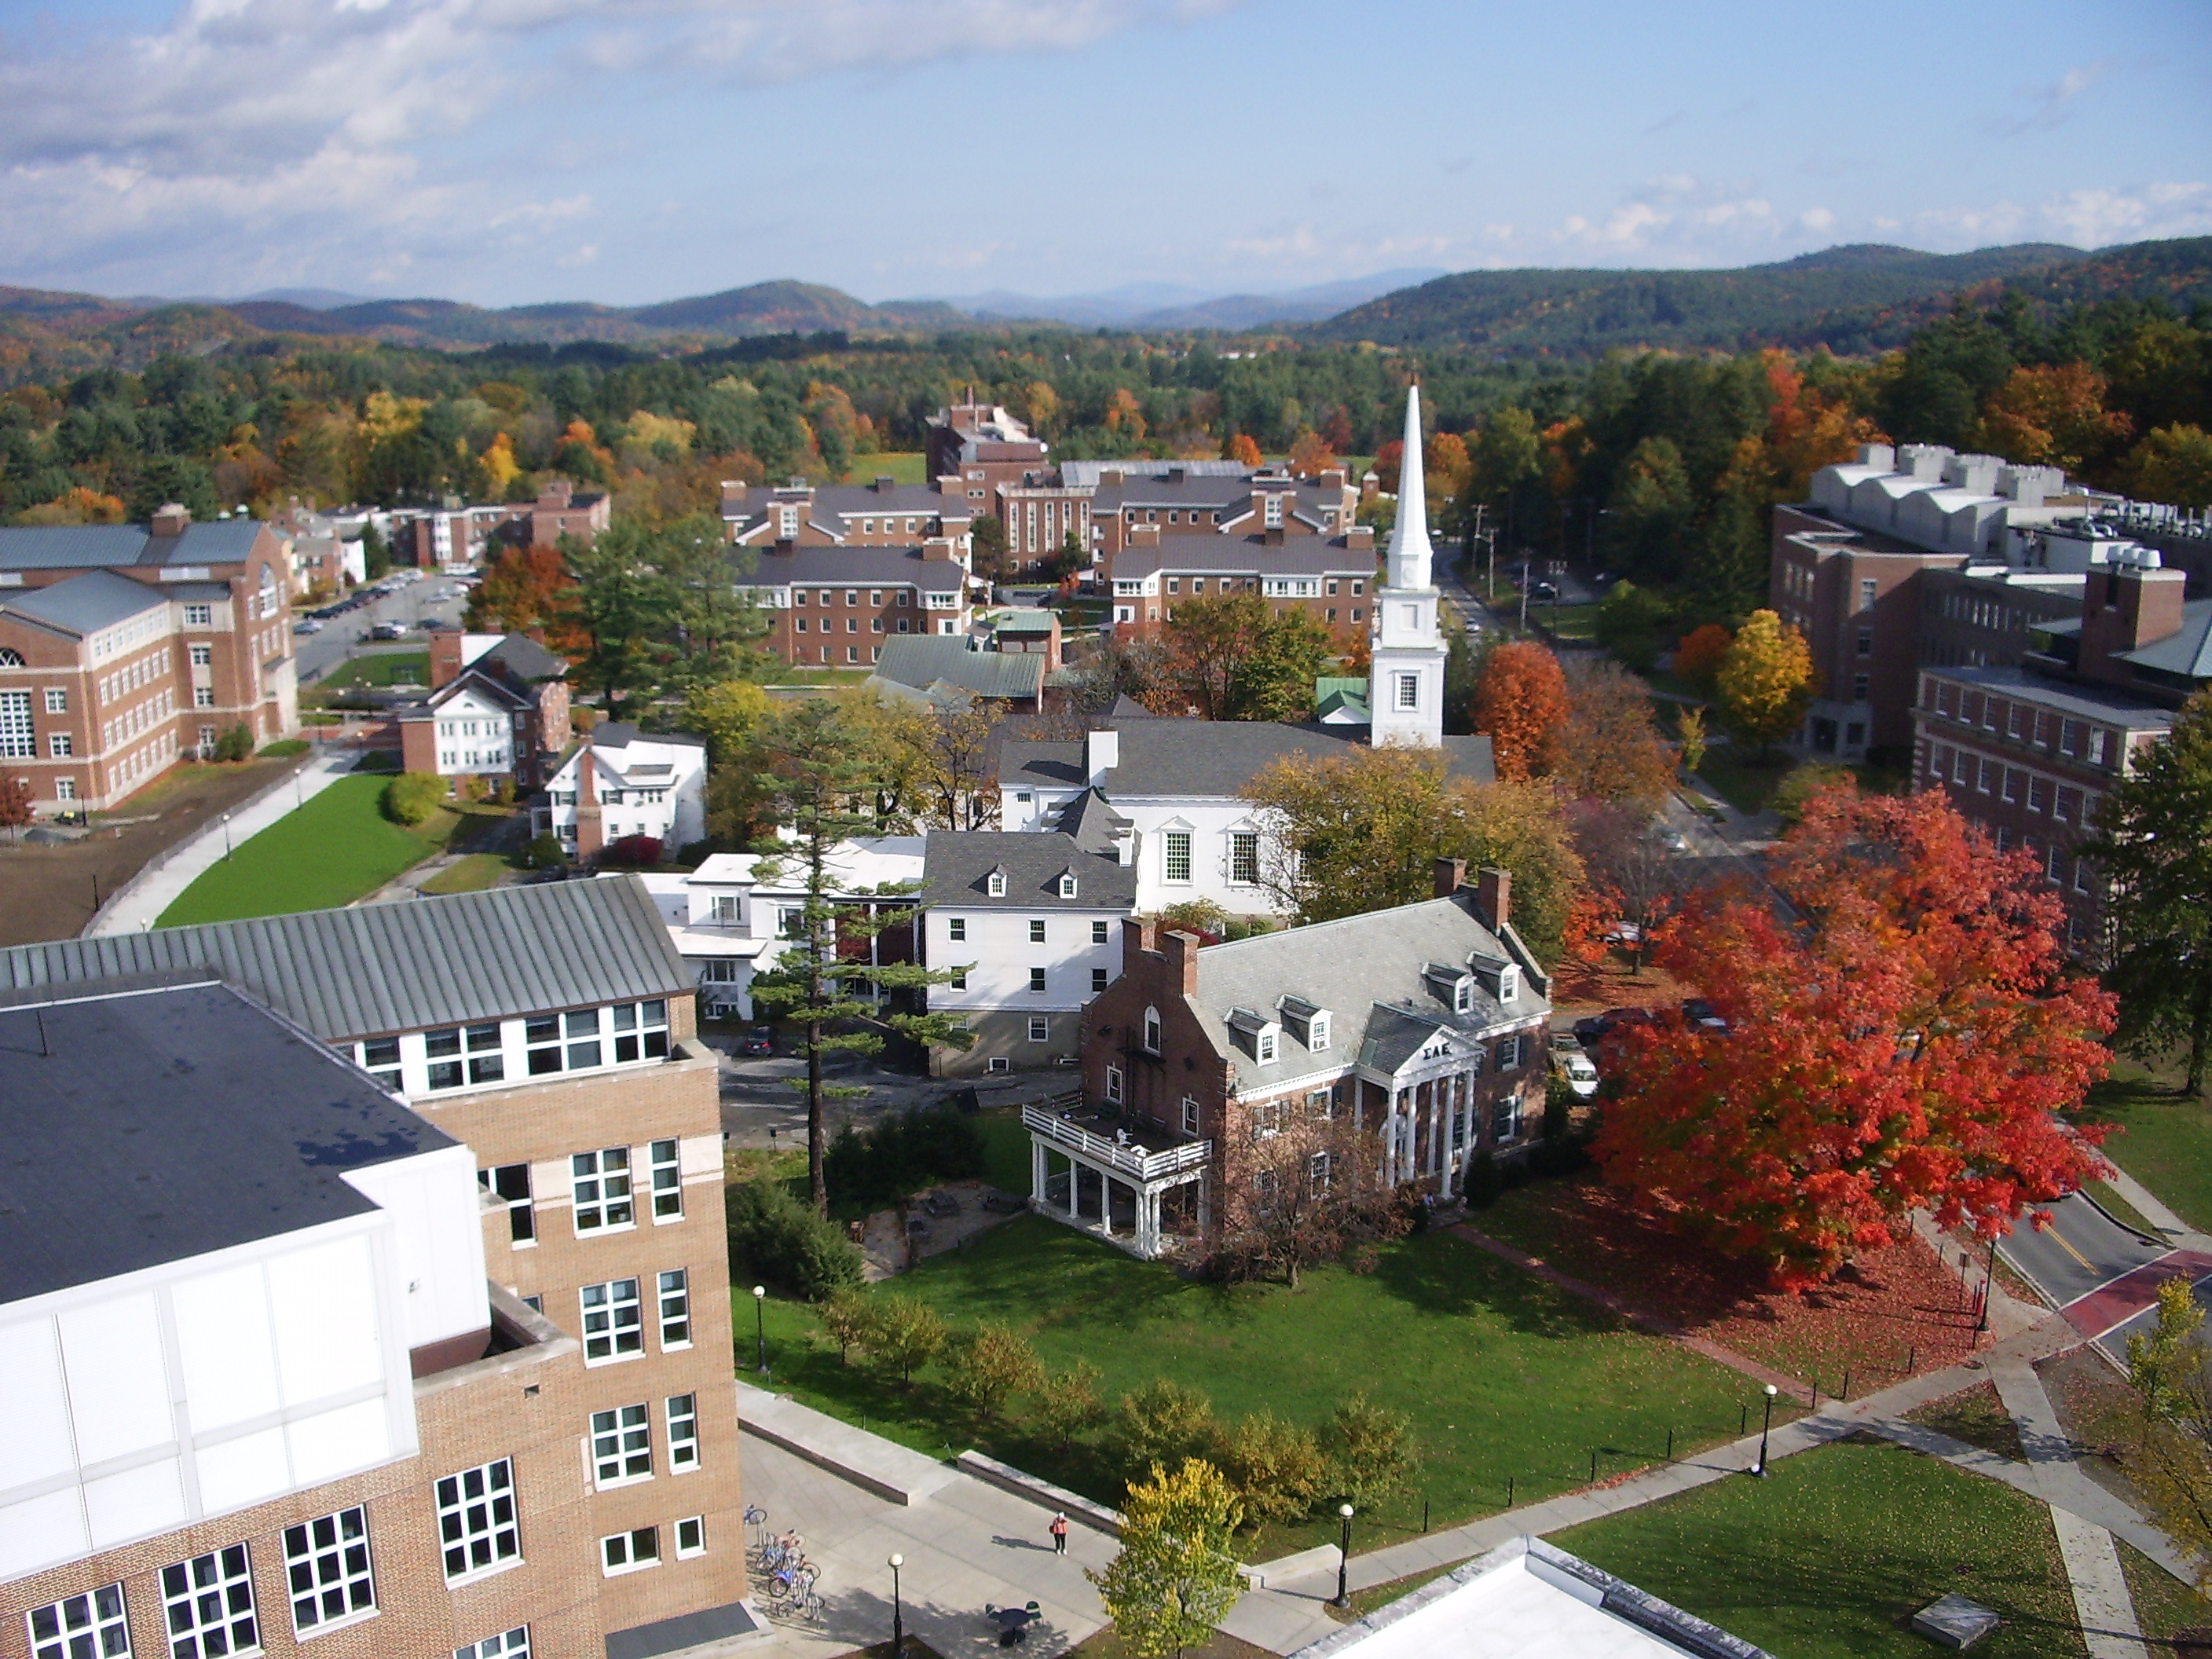 dartmouth_college_campus_2007-10-20_10